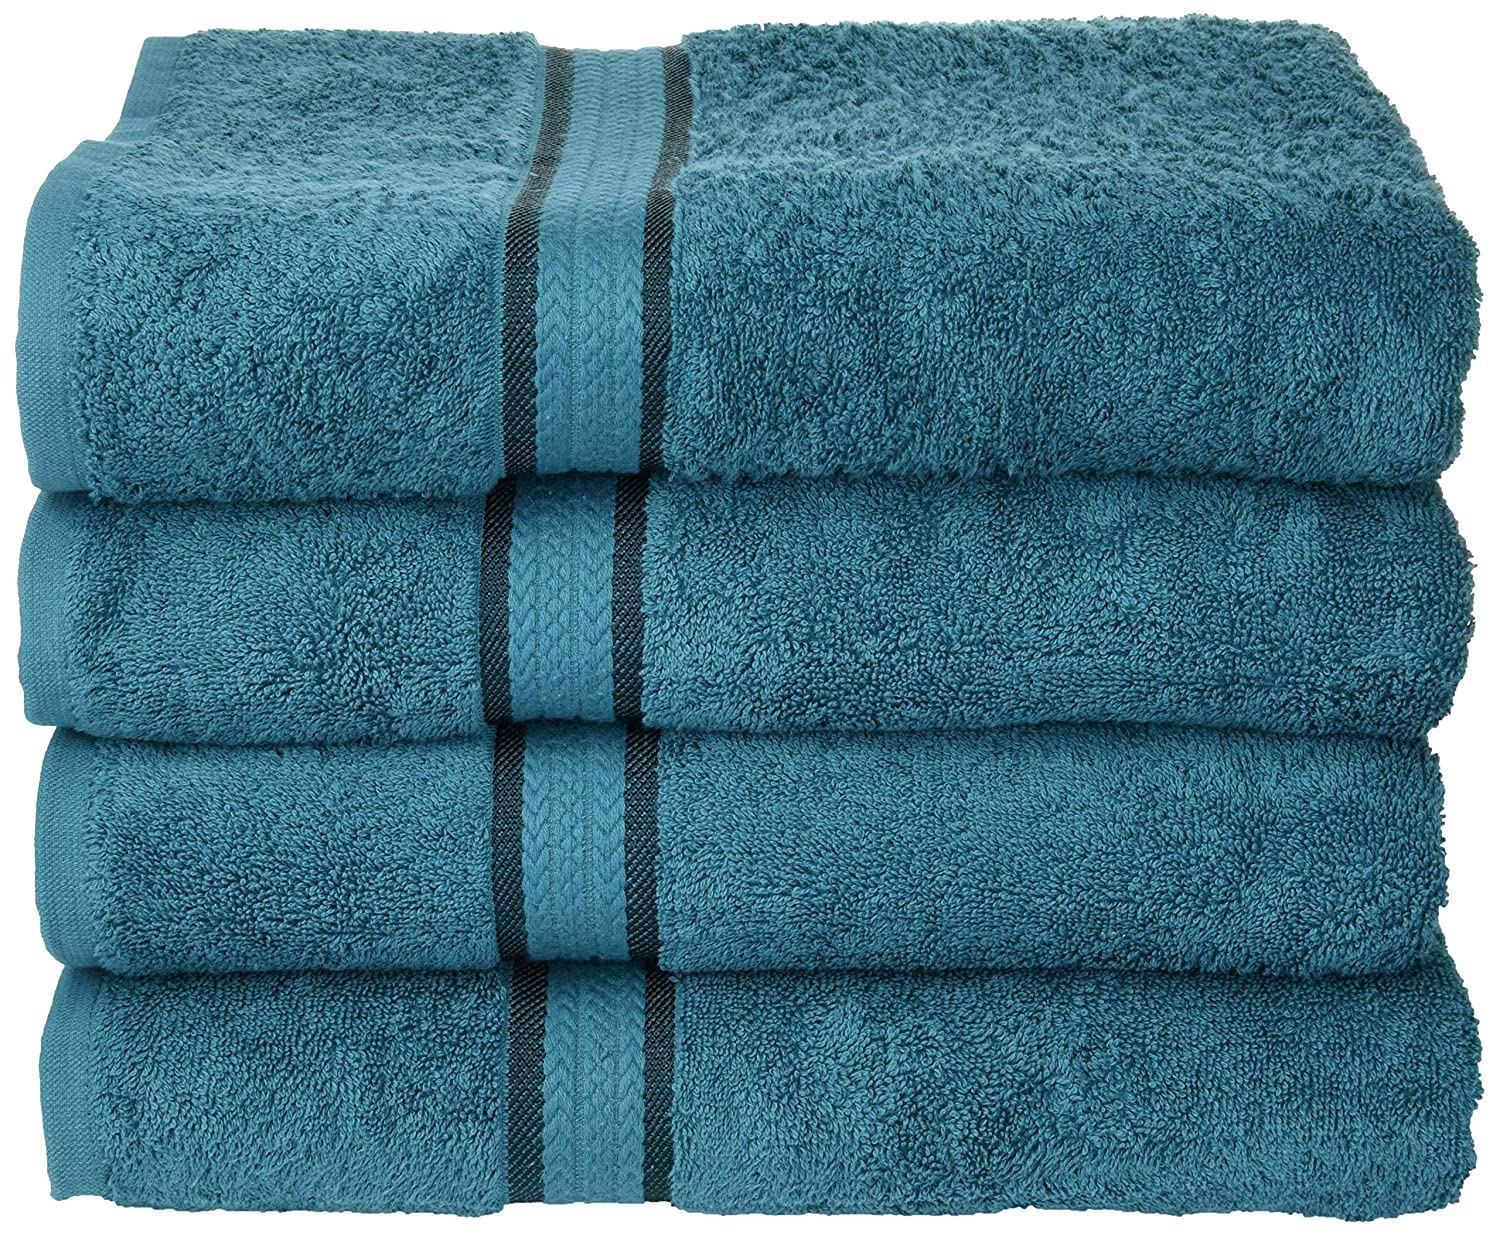 Cotton Craft - 4 Pack - Ultra Soft Oversized Extra Large Bath Towels 30x54 Teal - 100% Pure Ringspun Cotton - Luxurious Rayon Trim - Ideal for Daily Use - Each Towel Weighs 22 Ounces